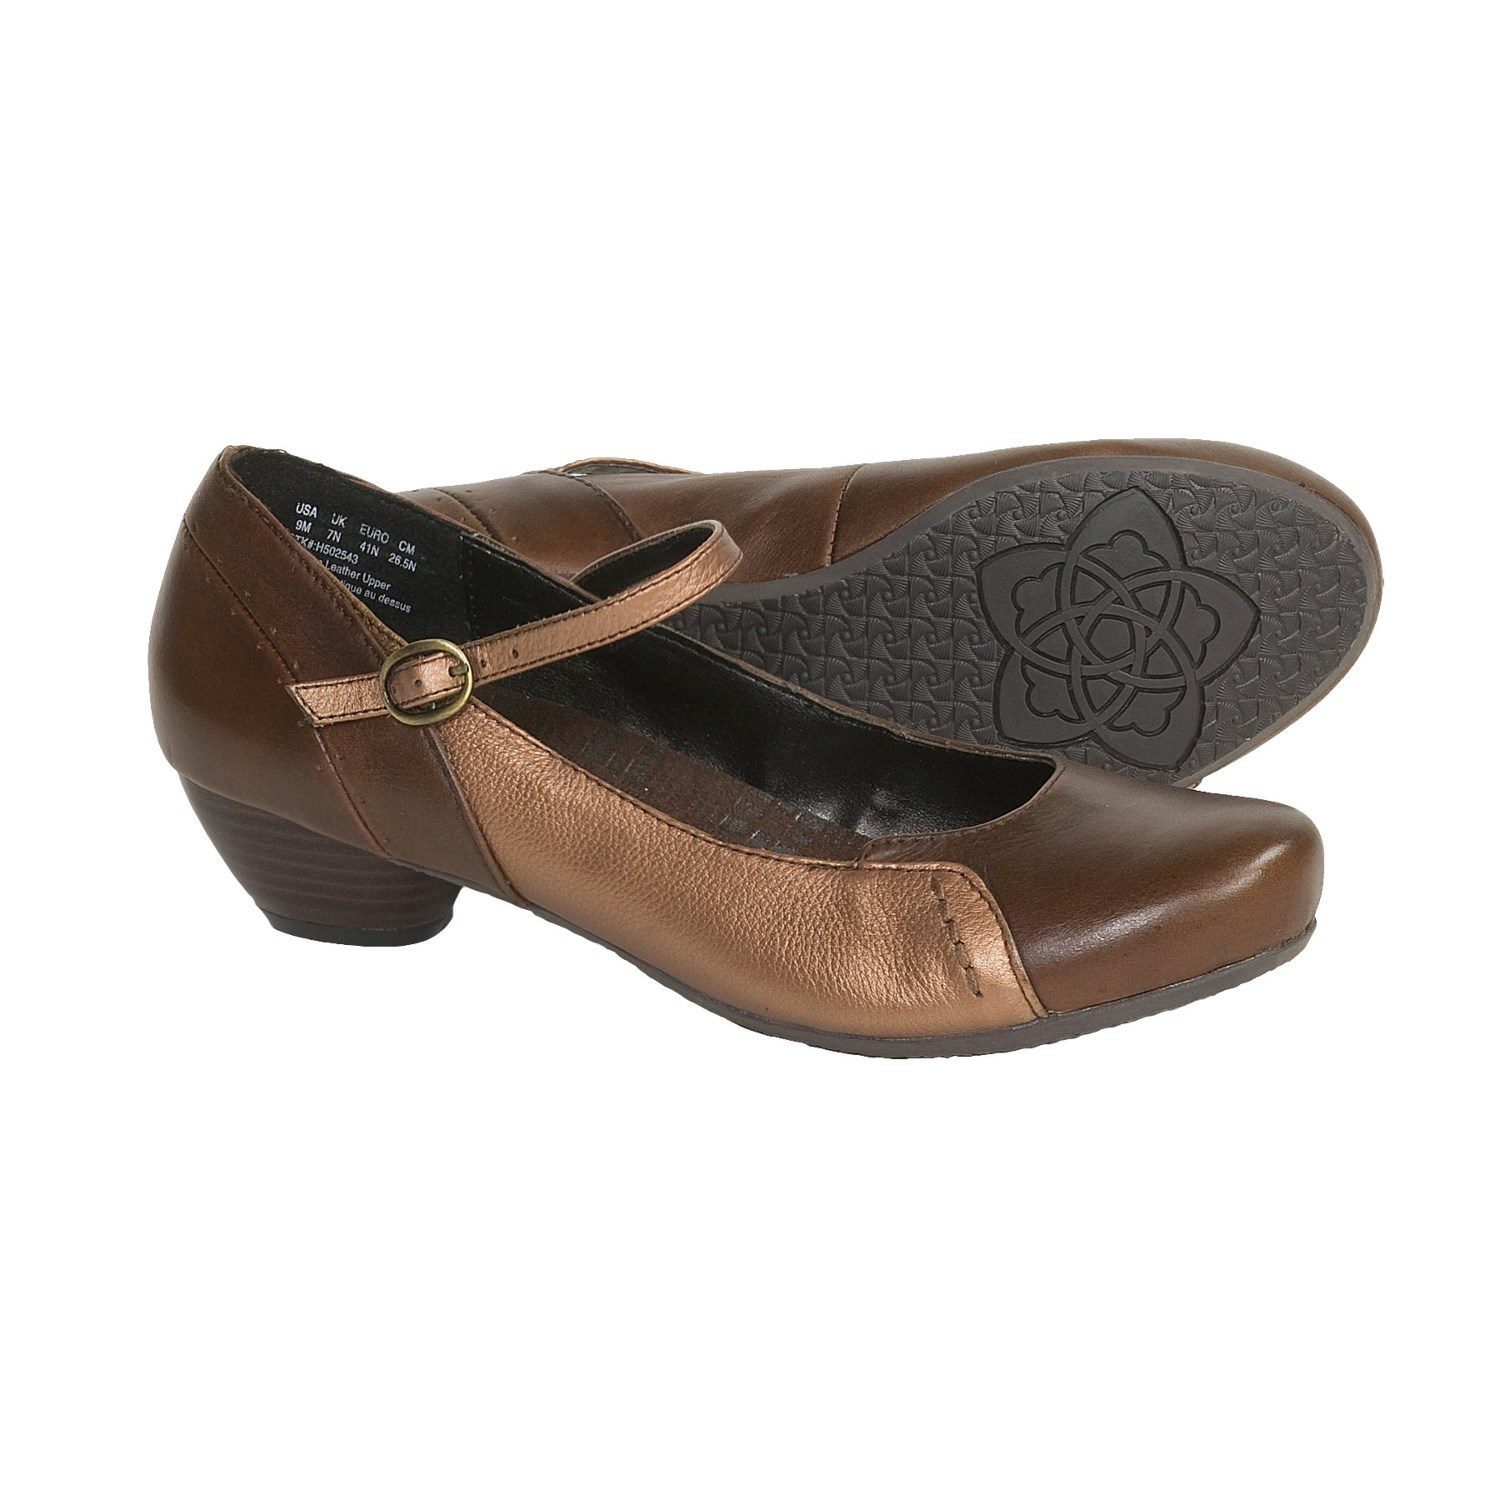 Hush Puppies Jermyn Mary Jane Shoes (For Women) - Save 35